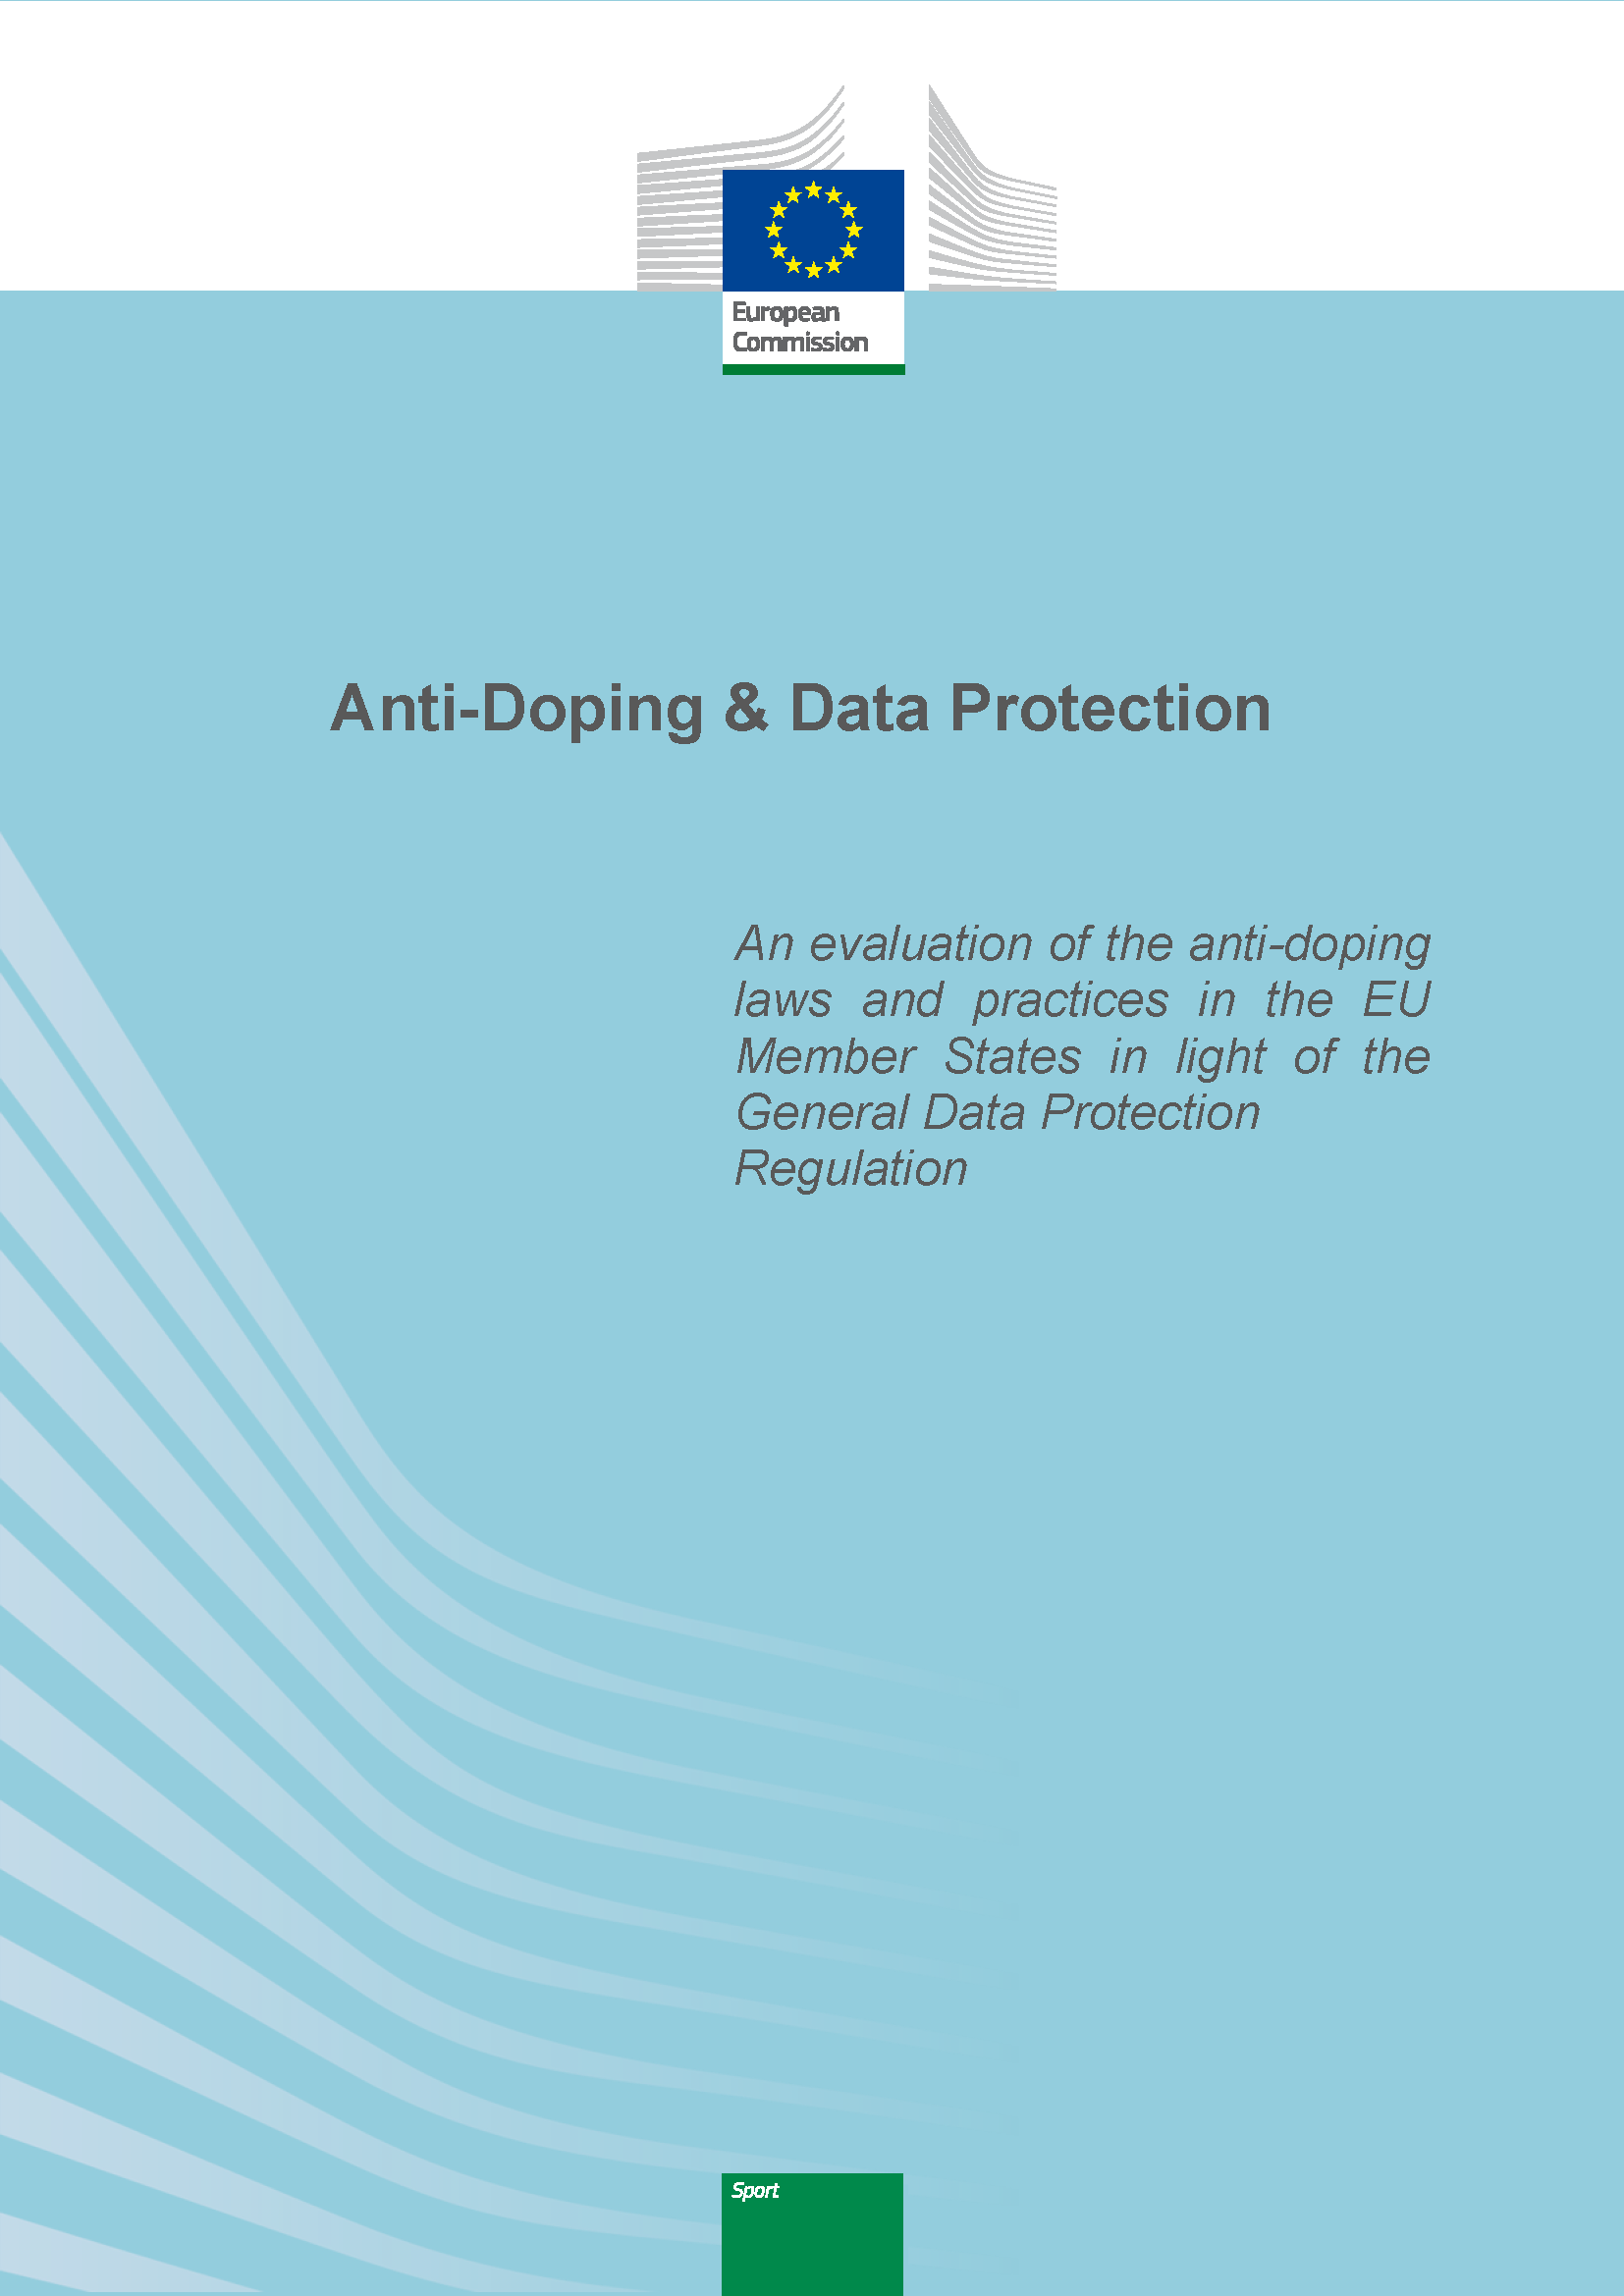 Anti-Doping & Data Protection